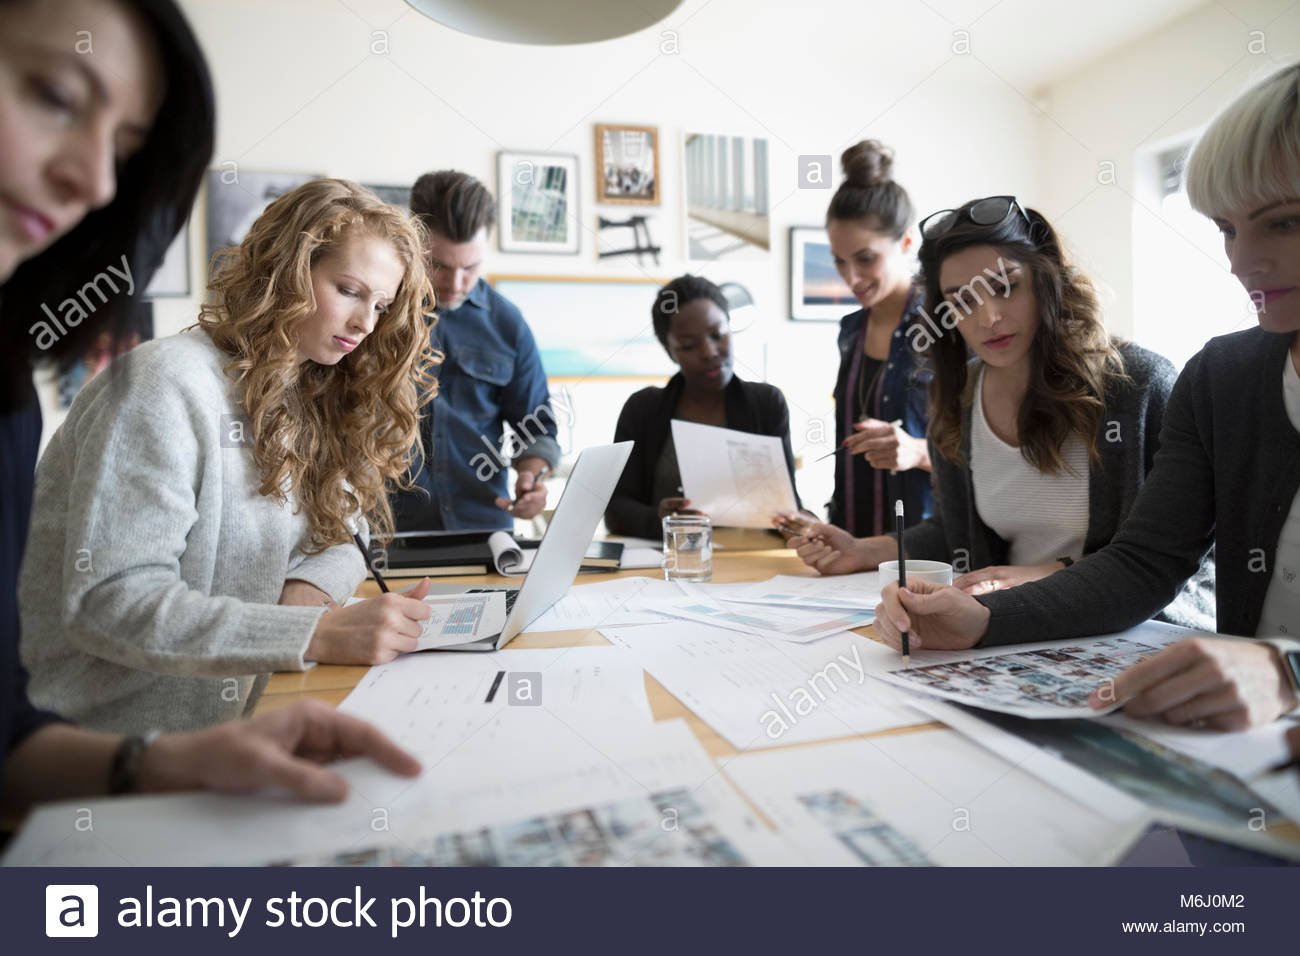 Production team editing photo proofs in office meeting Stock Photo